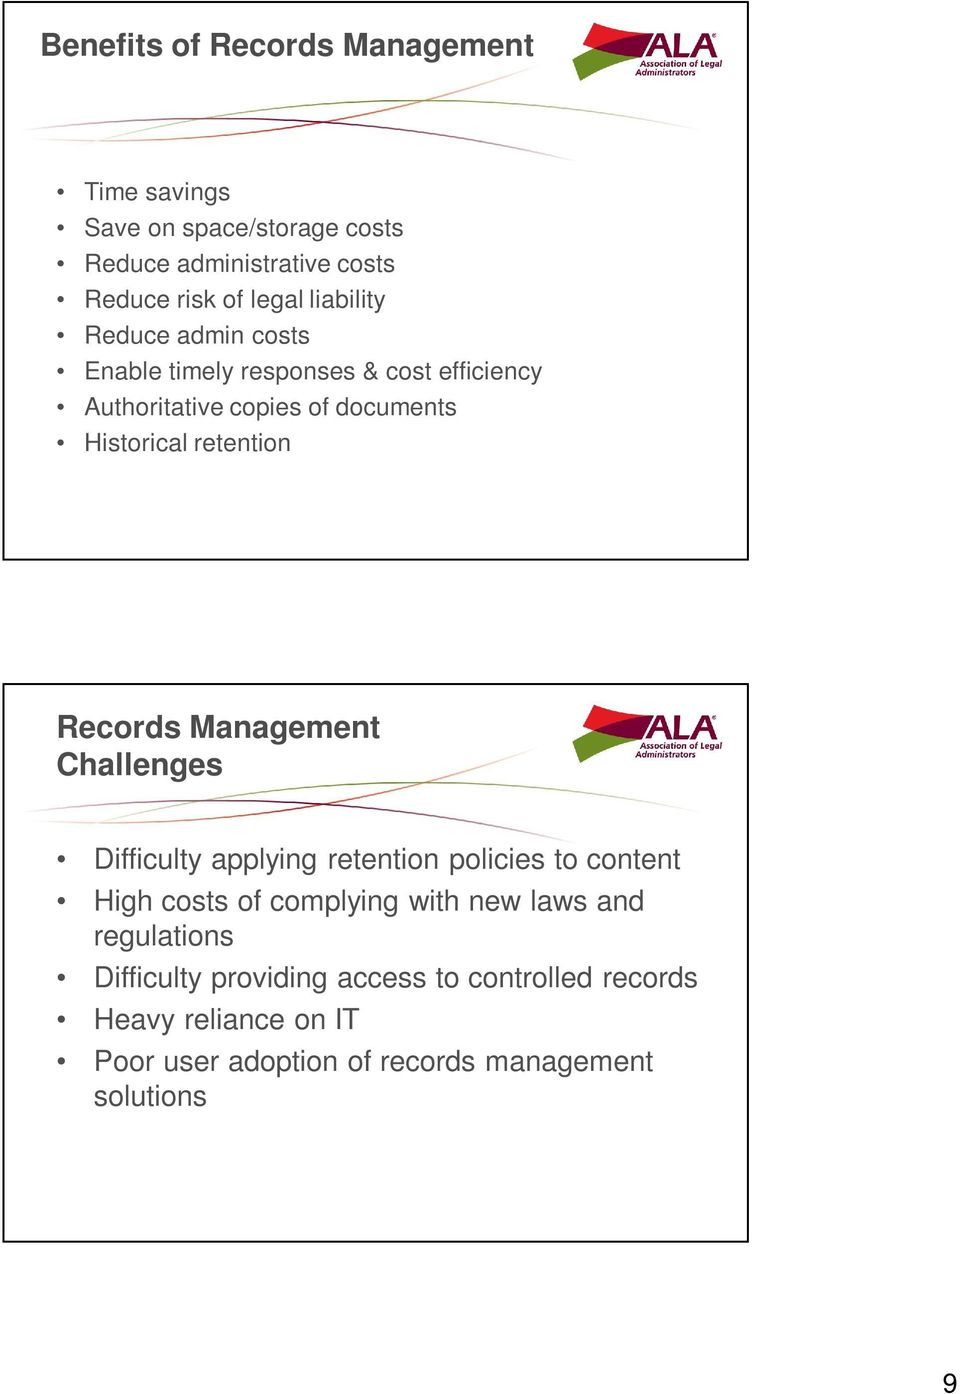 Records Management Challenges Difficulty applying retention policies to content High costs of complying with new laws and